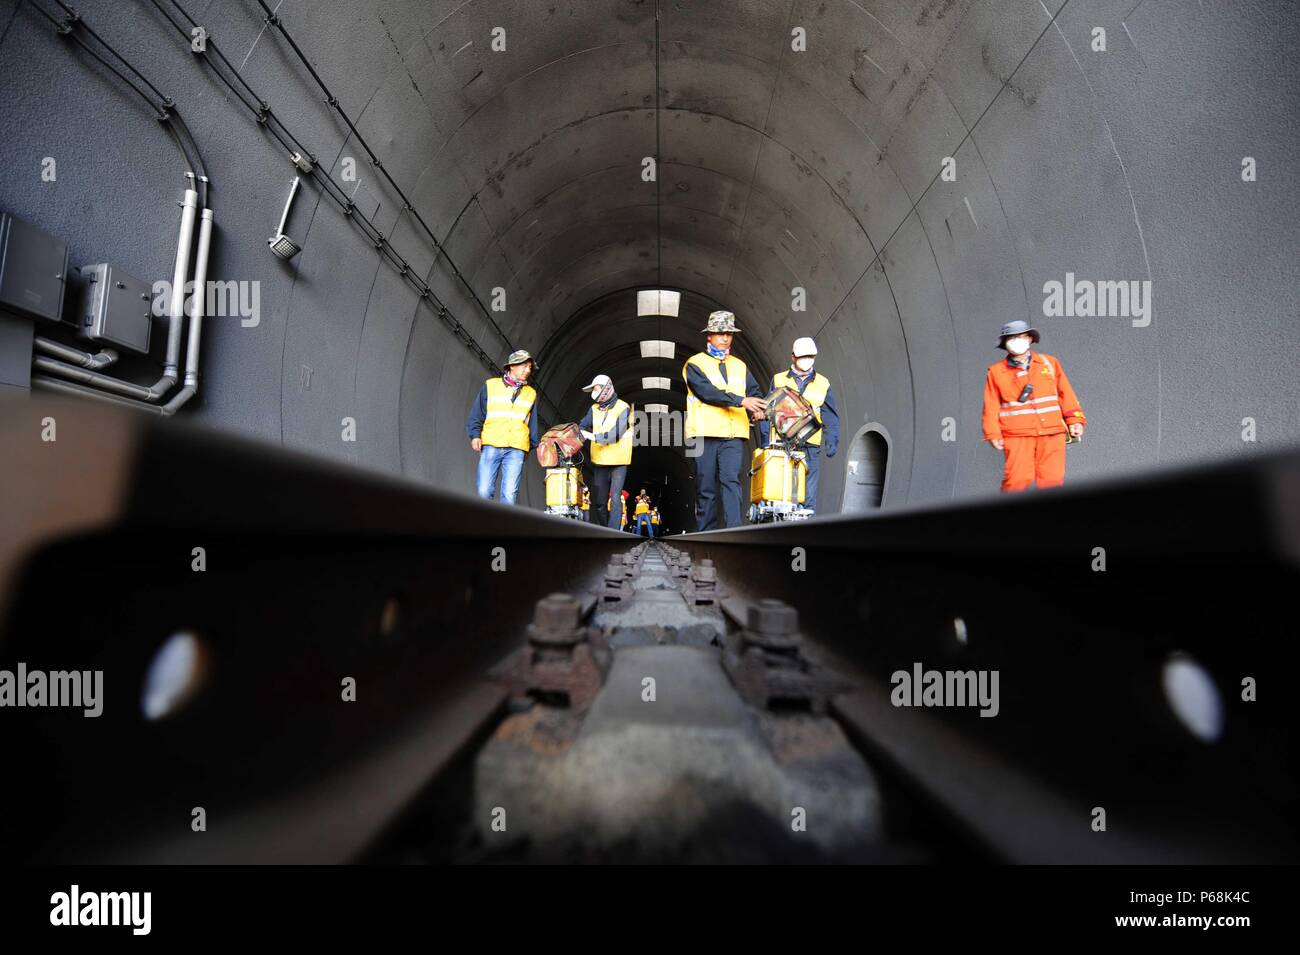 (180629) -- GOLMUD, June 29, 2018 (Xinhua) -- Maintenance workers check the tracks at the Xinguanjiao Tunnel, the world's longest plateau rail tunnel, along the Qinghai-Tibet Railway in northwest China's Qinghai Province, June 27, 2018. With a length of 32.6 kilometers, the tunnel was put into operation at the end of 2014.  (Xinhua/Hou Deqiang)(mcg) - Stock Image